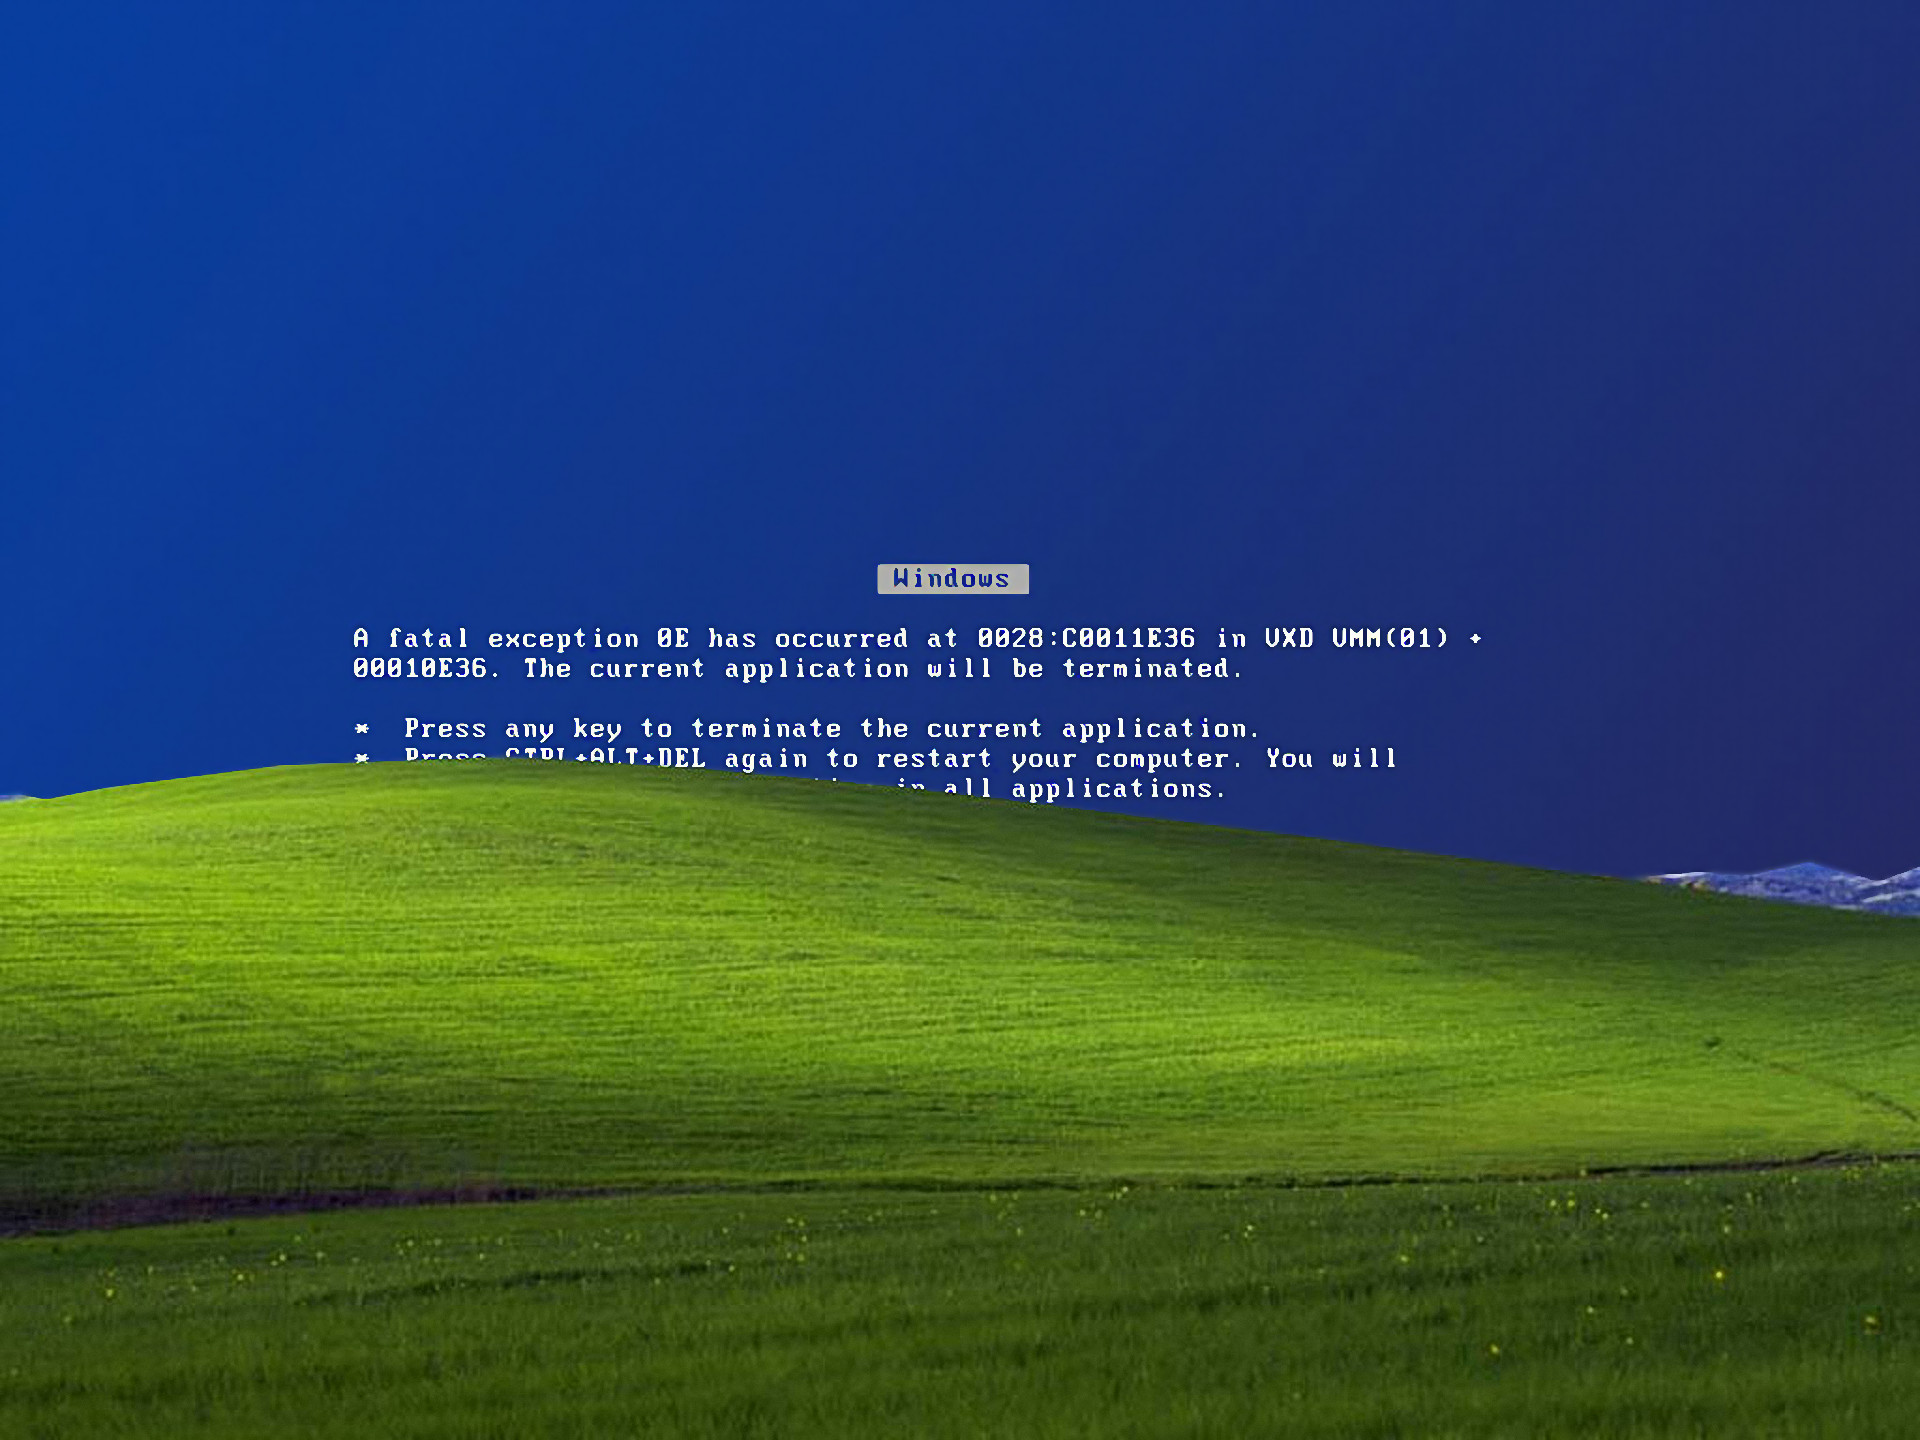 1920x1440 Windows XP error Microsoft Windows Blue Screen of Death wallpaper |   | 224463 | WallpaperUP